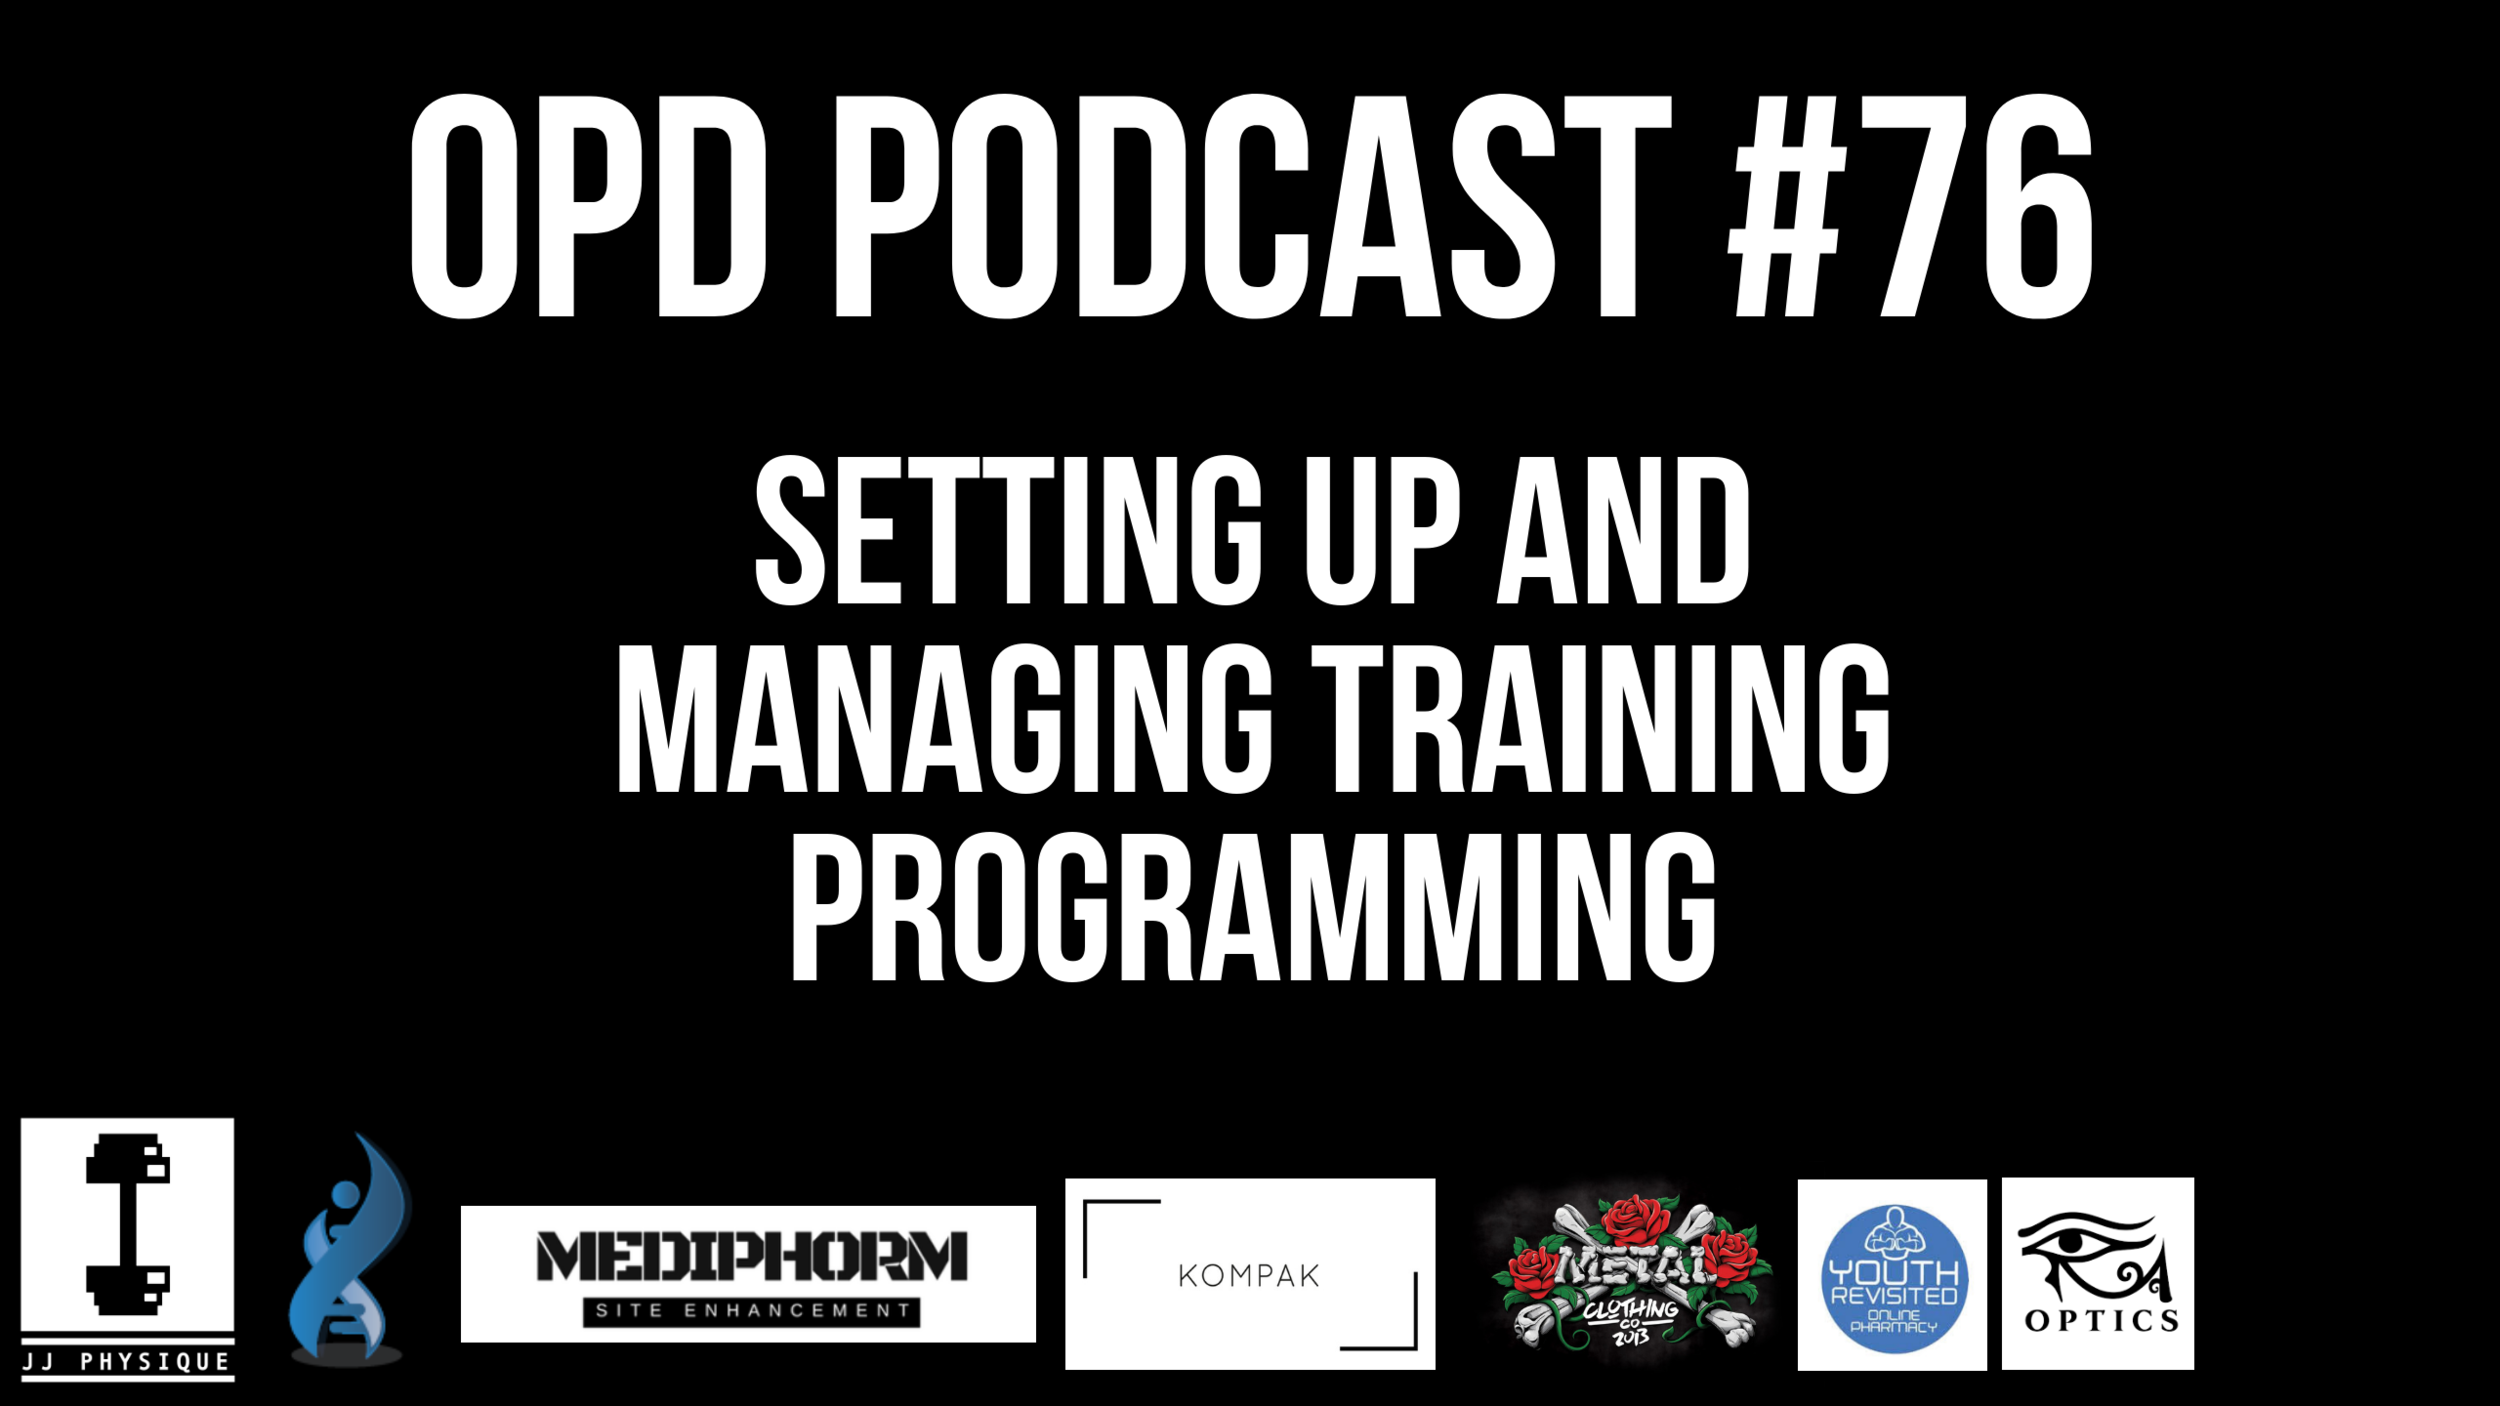 OPTIMAL PHYSIQUE DEVELOPMENTPODCAST (13).png